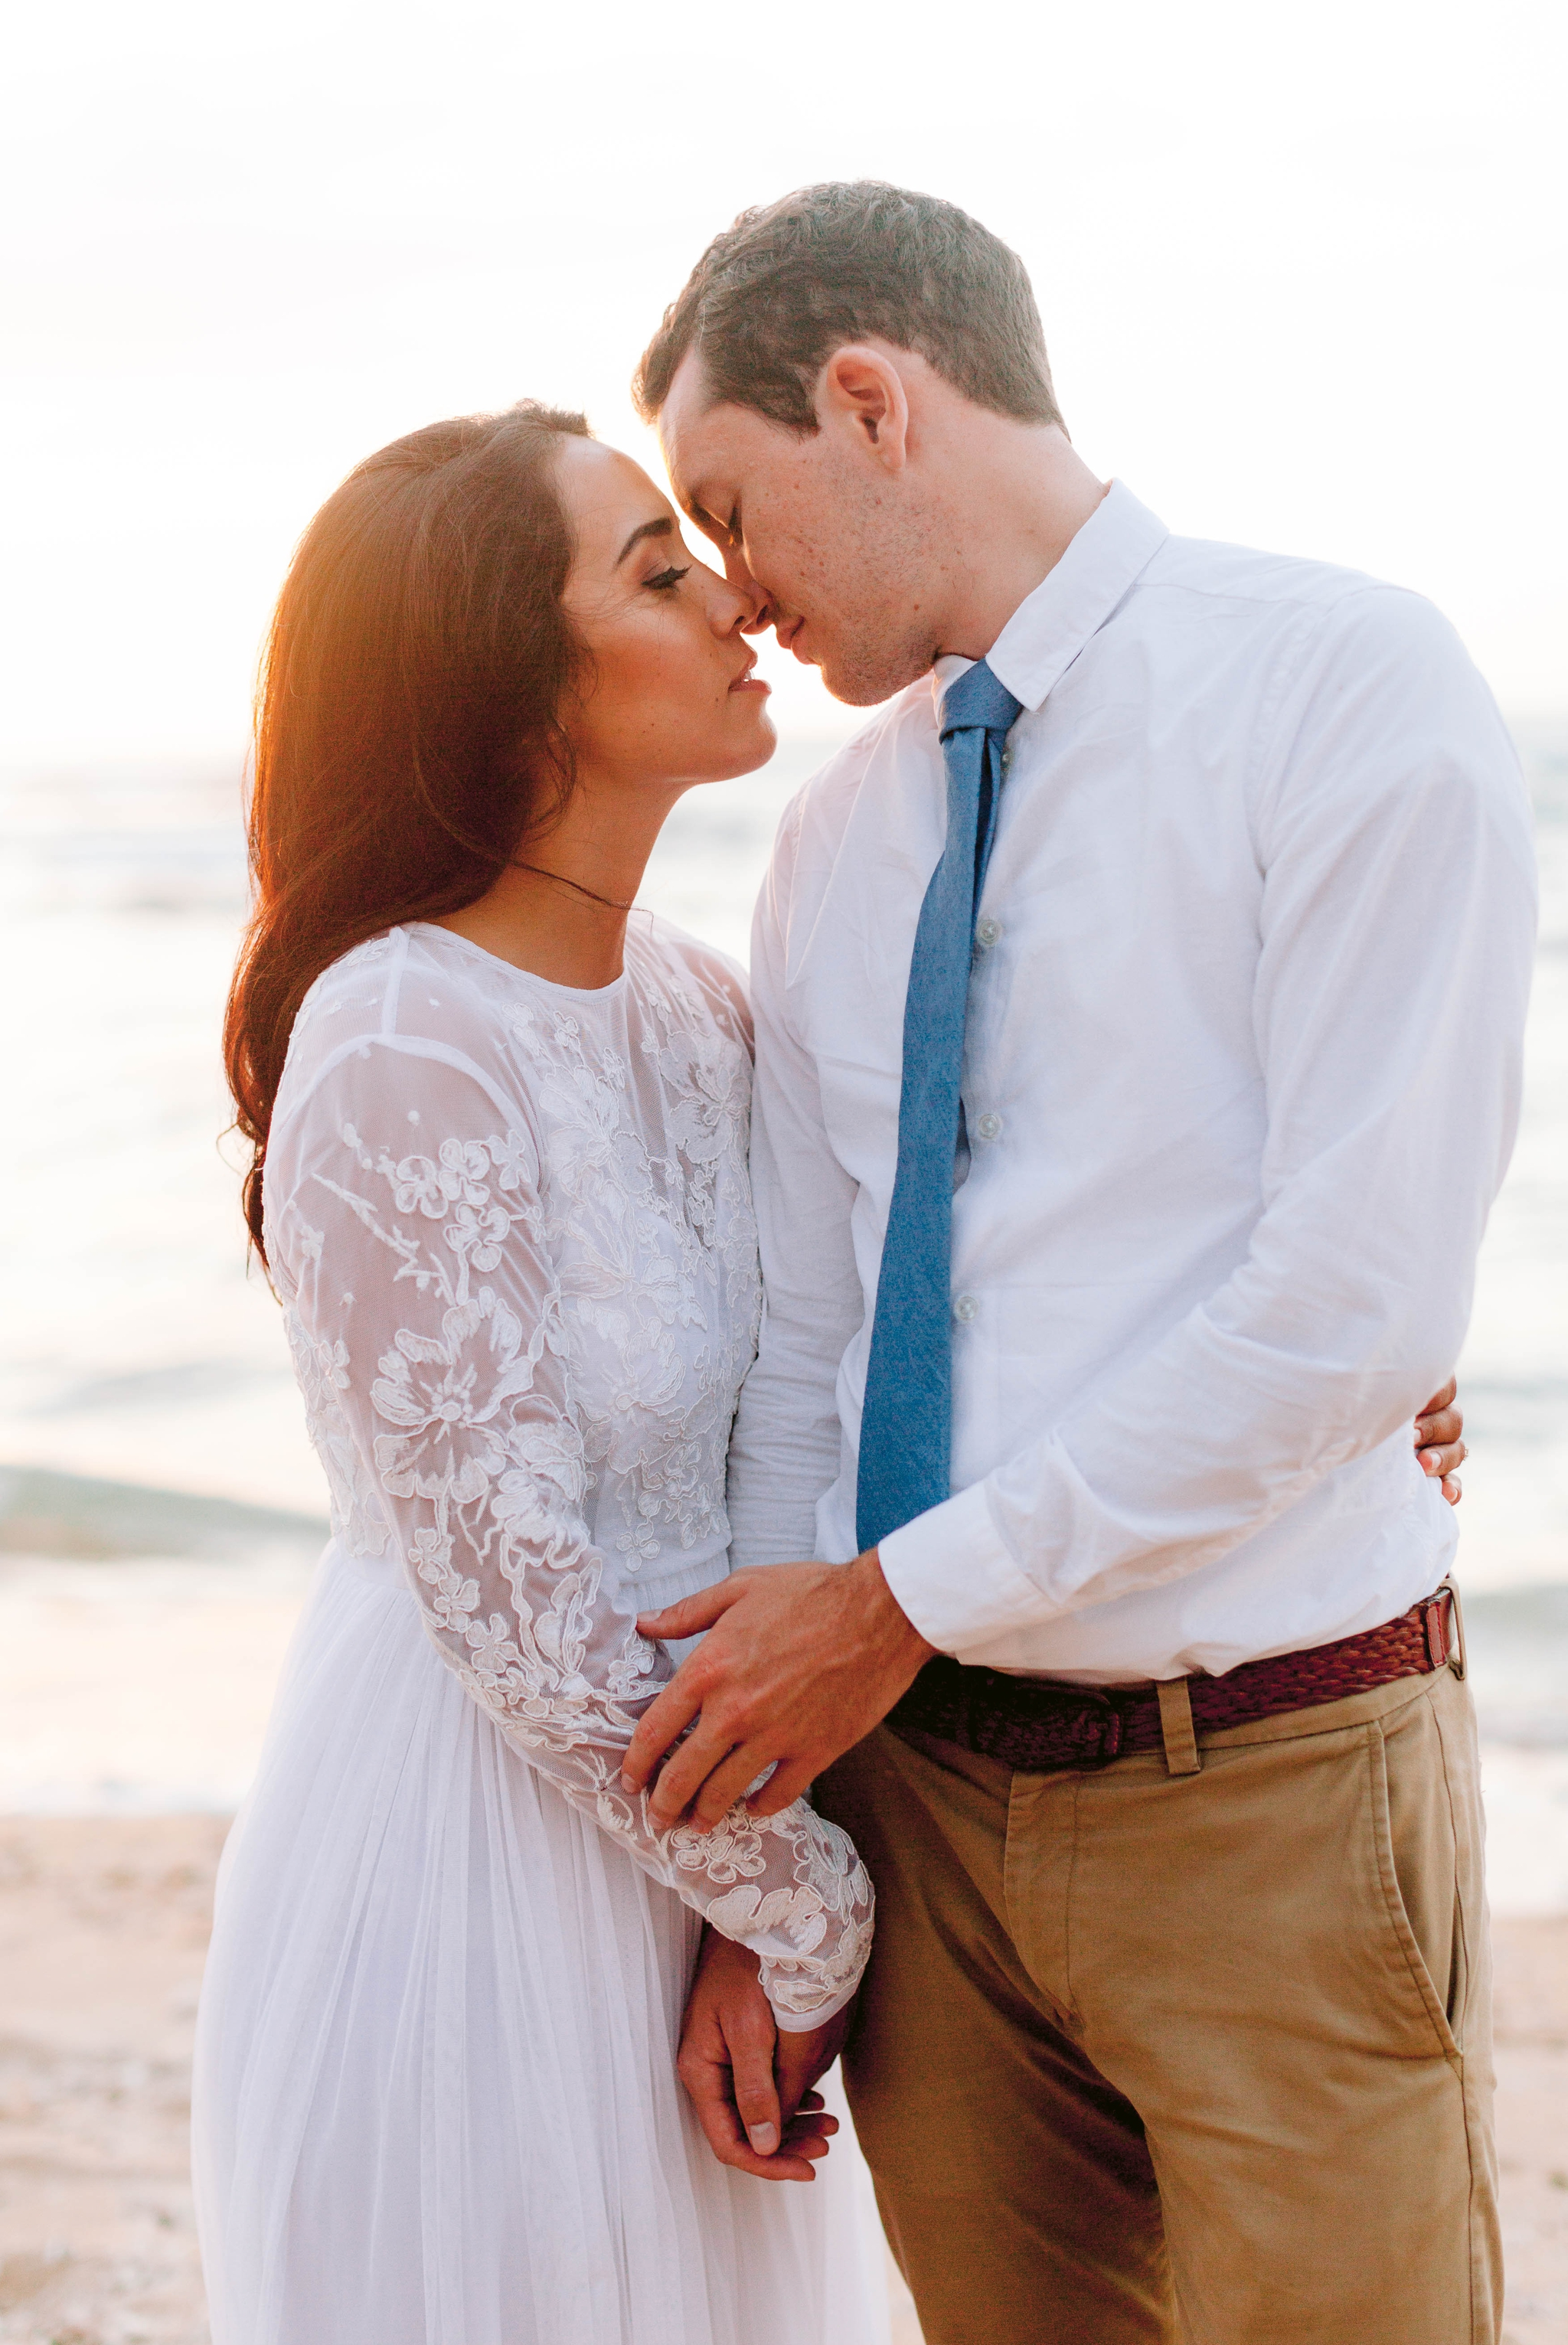 Bride and Groom Kissing - Beach Wedding Portraits at Sunset in Hawaii - Ana + Elijah - Wedding at Loulu Palm in Haleiwa, HI - Oahu Hawaii Wedding Photographer - #hawaiiweddingphotographer #oahuweddings #hawaiiweddings